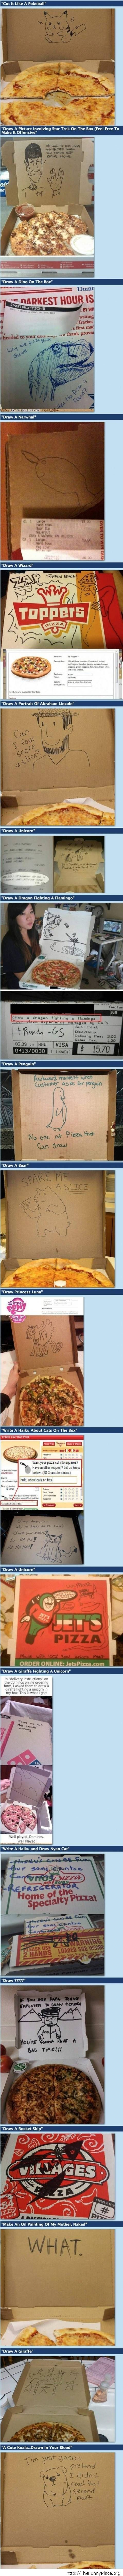 How do you like your pizza